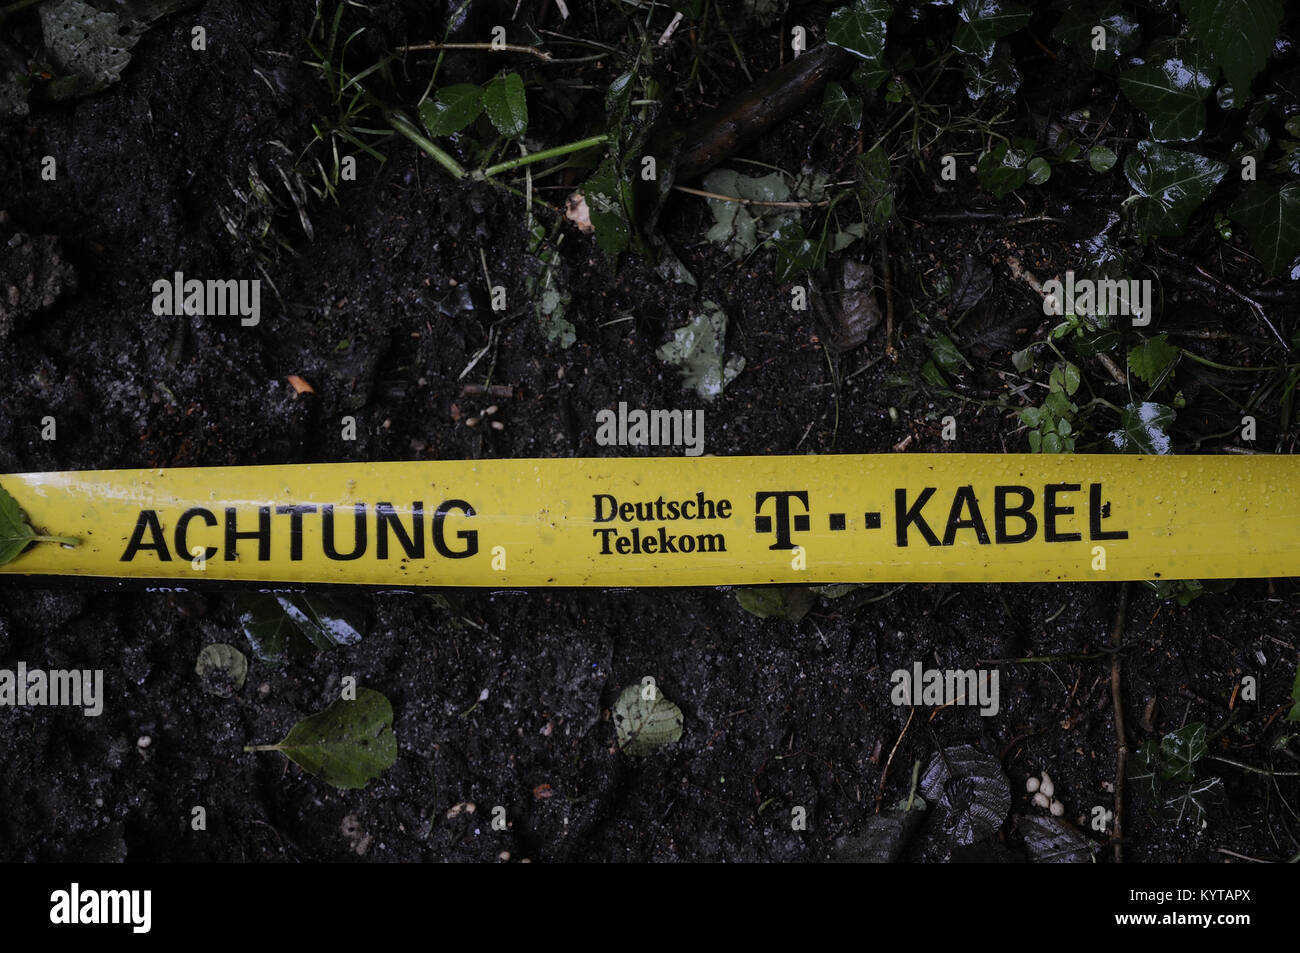 Kabel Deutschland Stock Photos & Kabel Deutschland Stock Images - Alamy